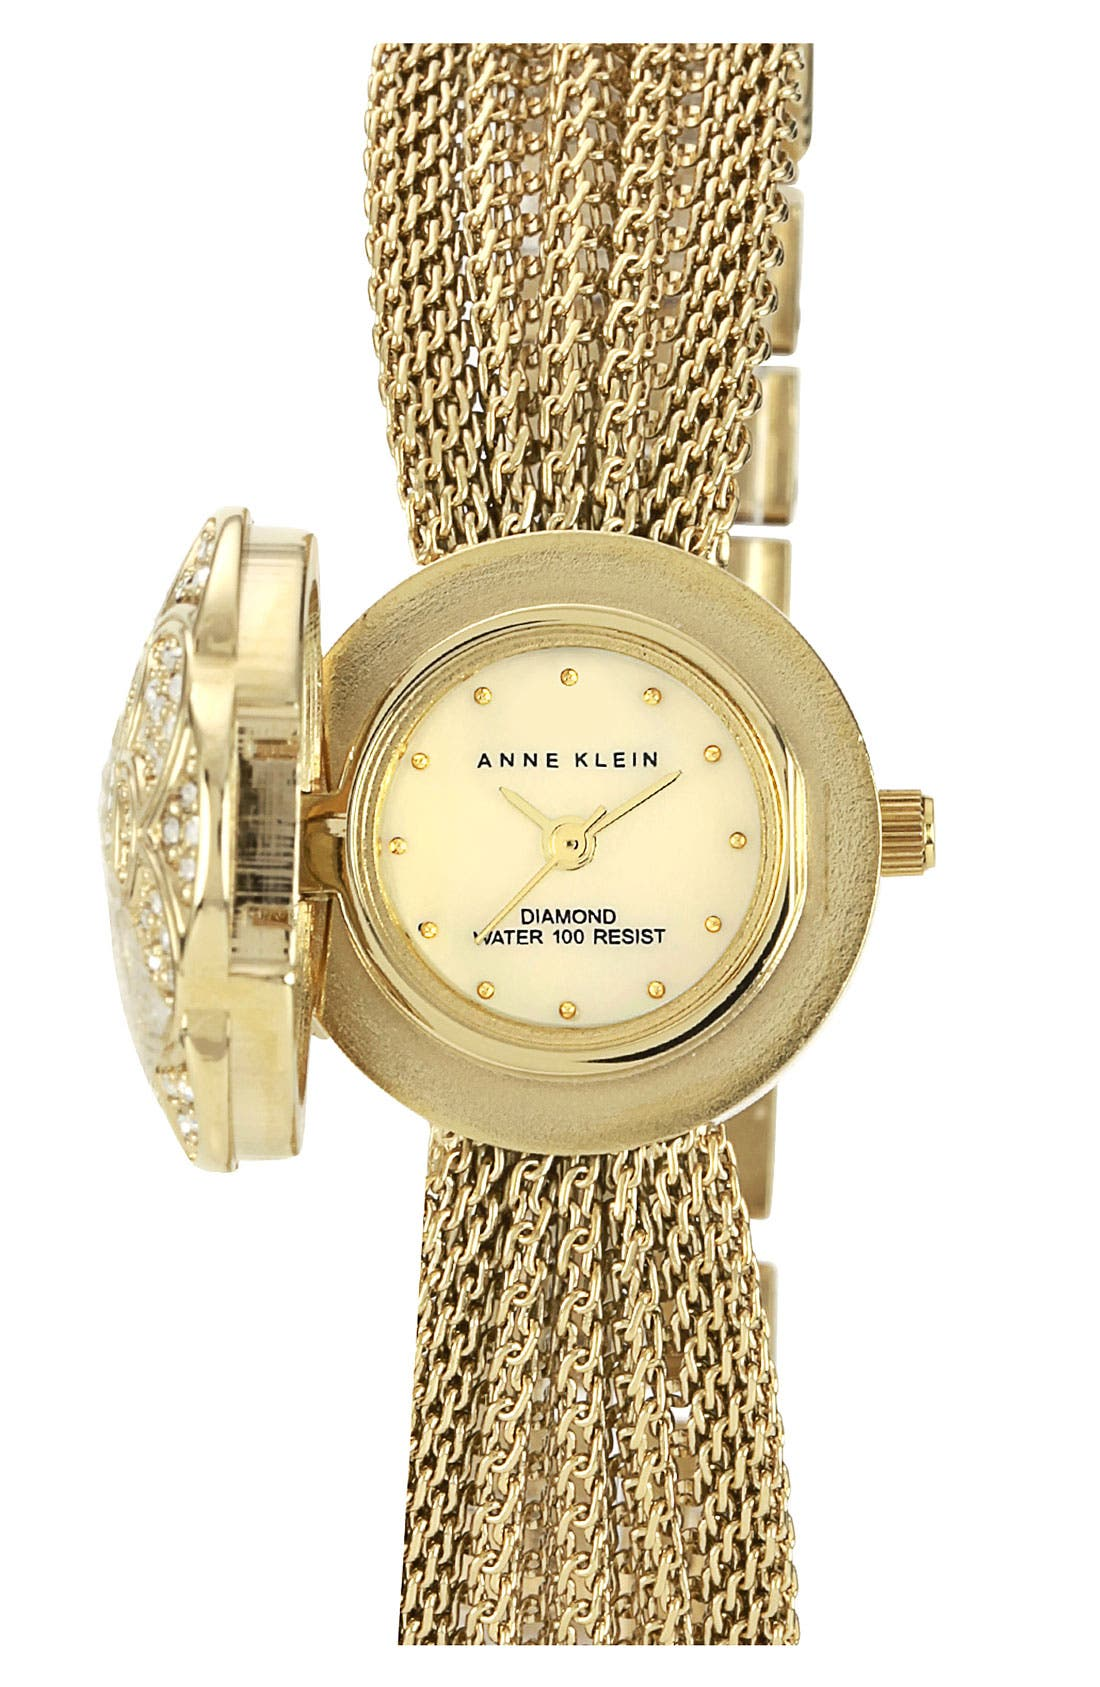 Main Image - Anne Klein Flower Case Chain Bracelet Watch, 18mm